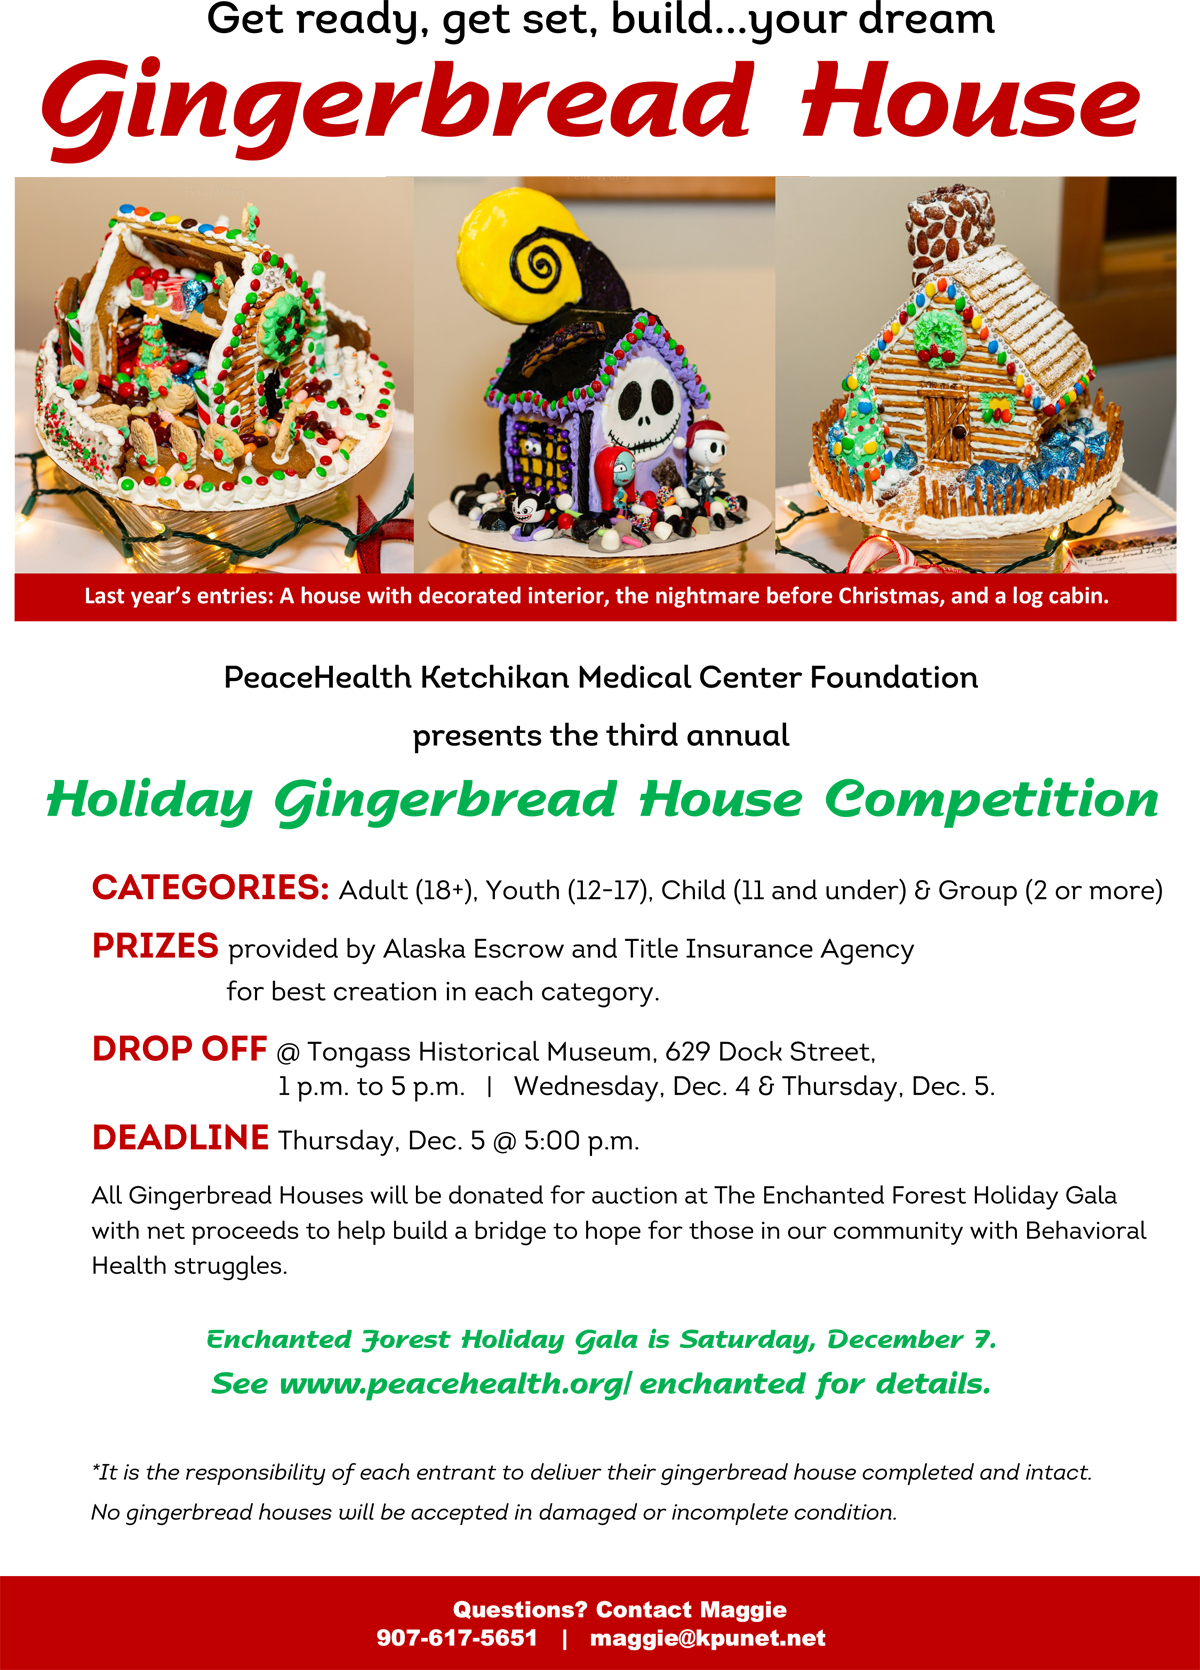 3rd Annual Holiday Gingerbread House Competition